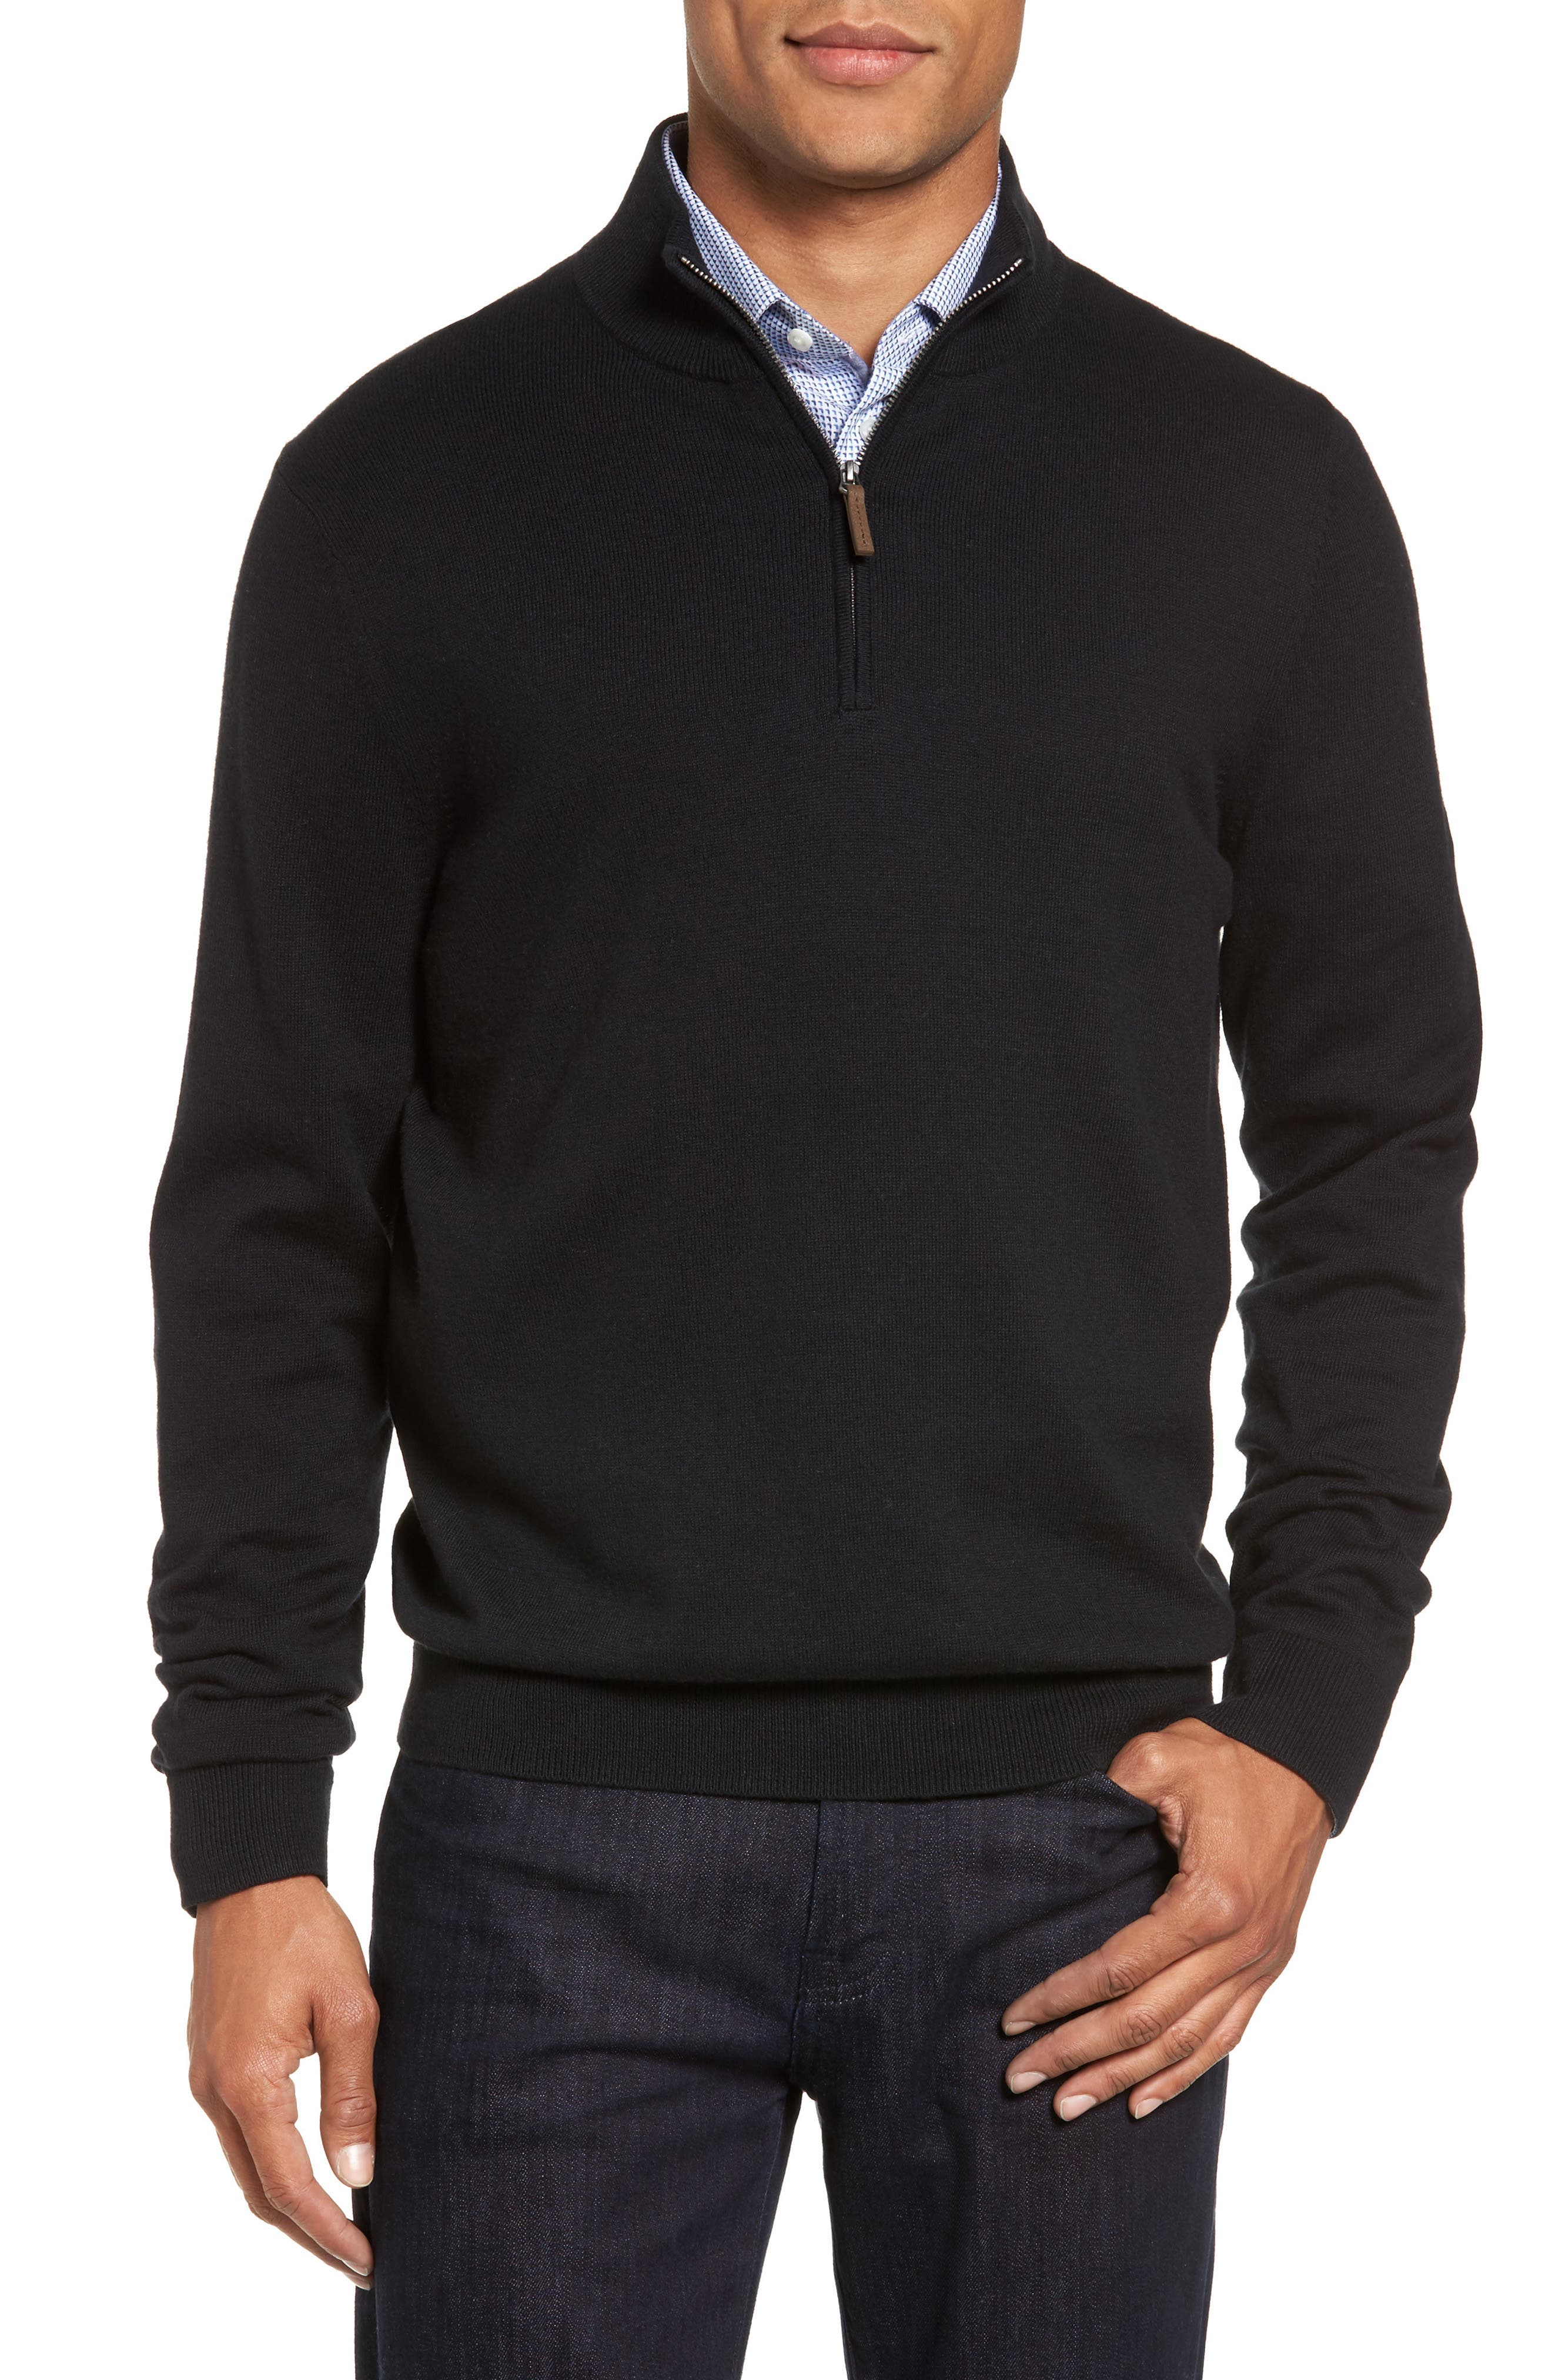 Men's Cotton Blend Sweaters | Nordstrom